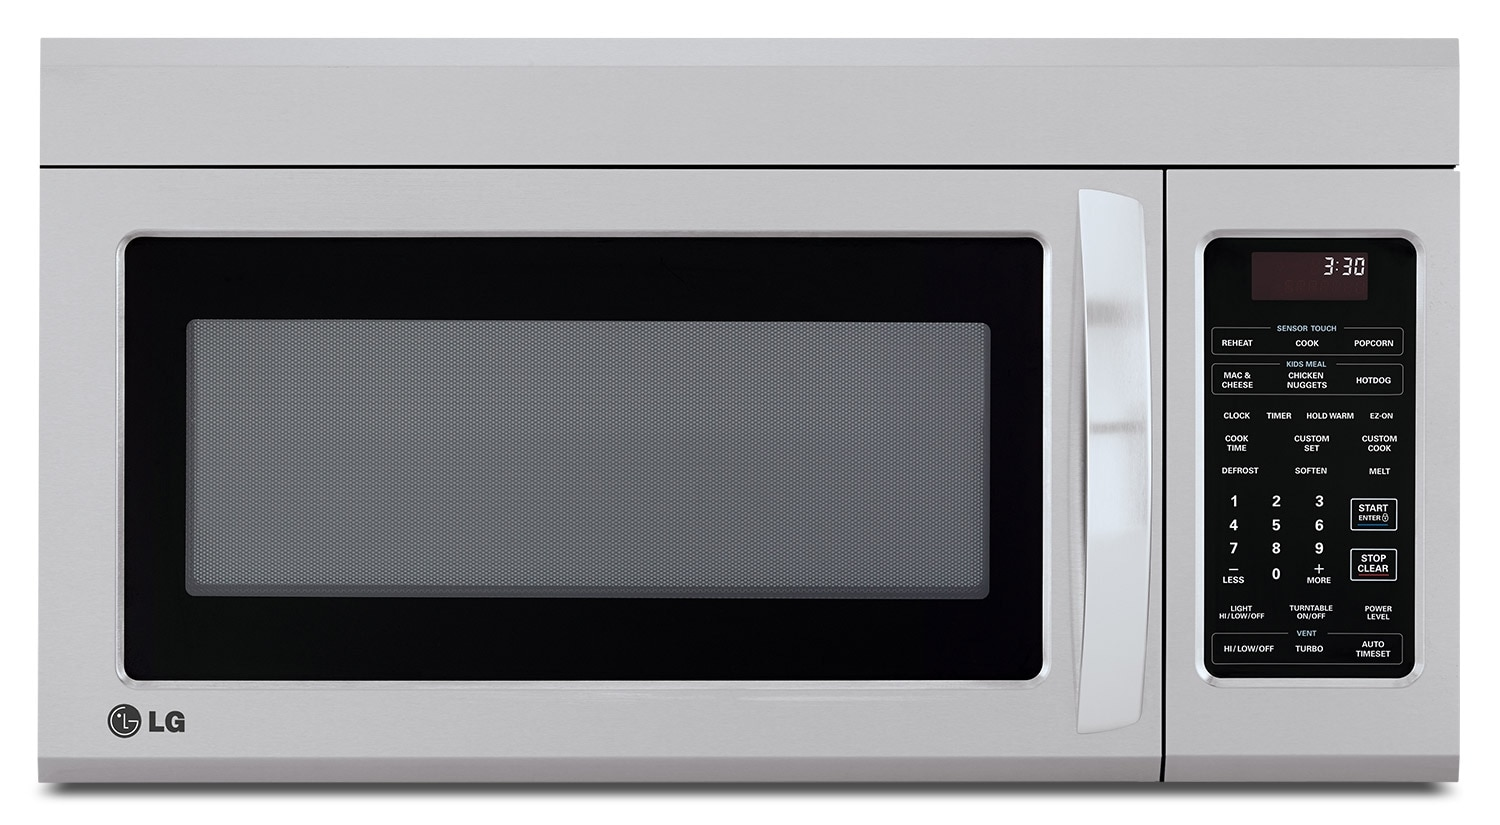 Cooking Products - LG Appliances Stainless Steel Over-the-Range Microwave (1.8 Cu. Ft.) - LMV1852ST